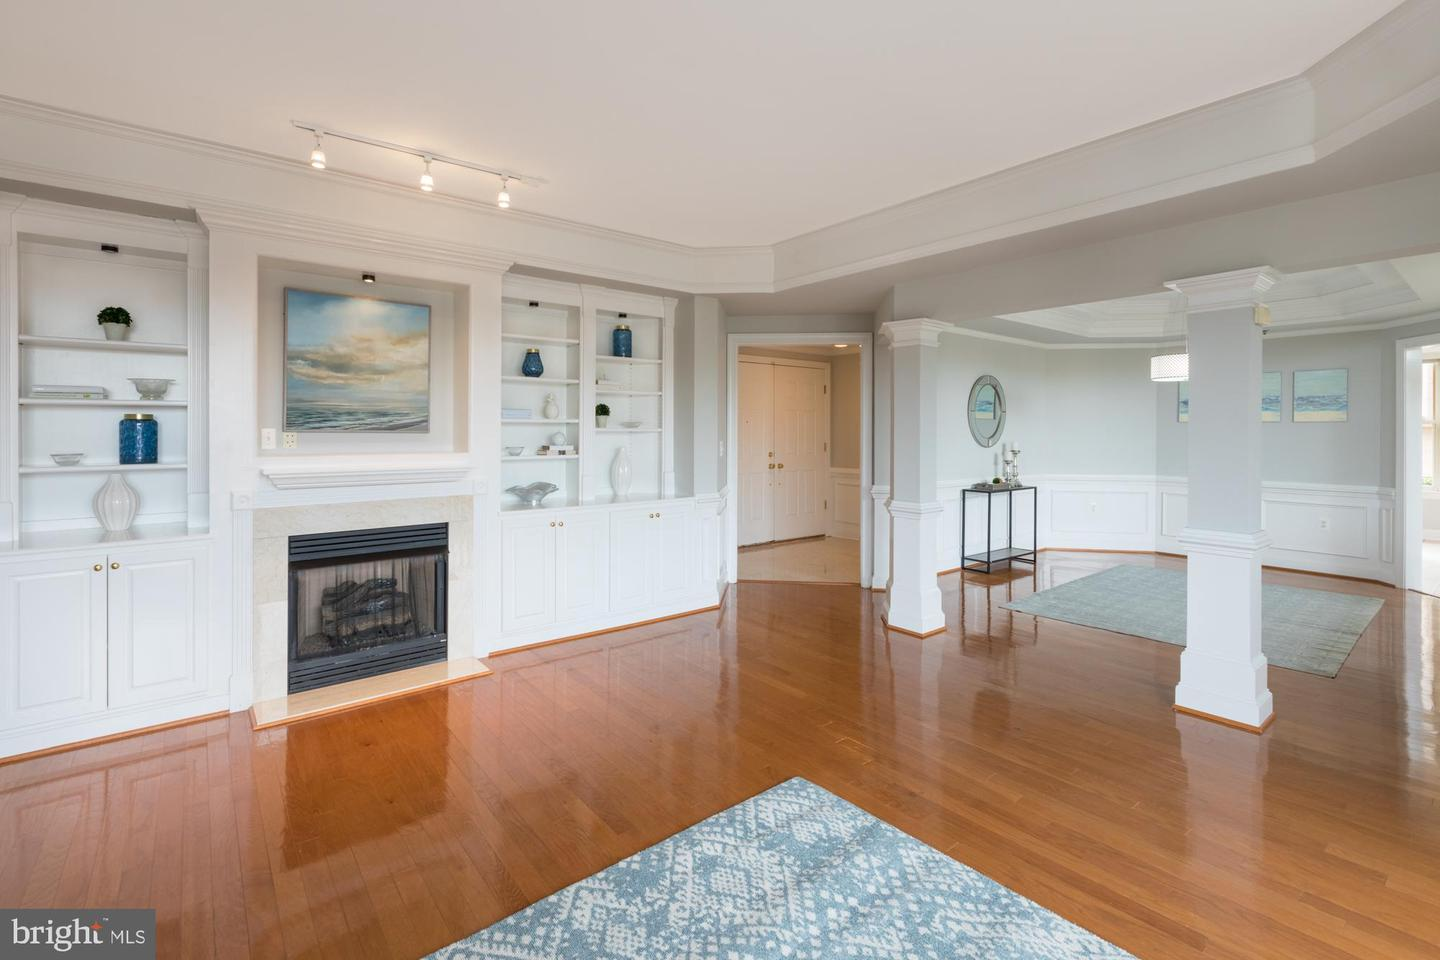 Additional photo for property listing at 1555 N Colonial Ter #500 Arlington, Virginia 22209 United States